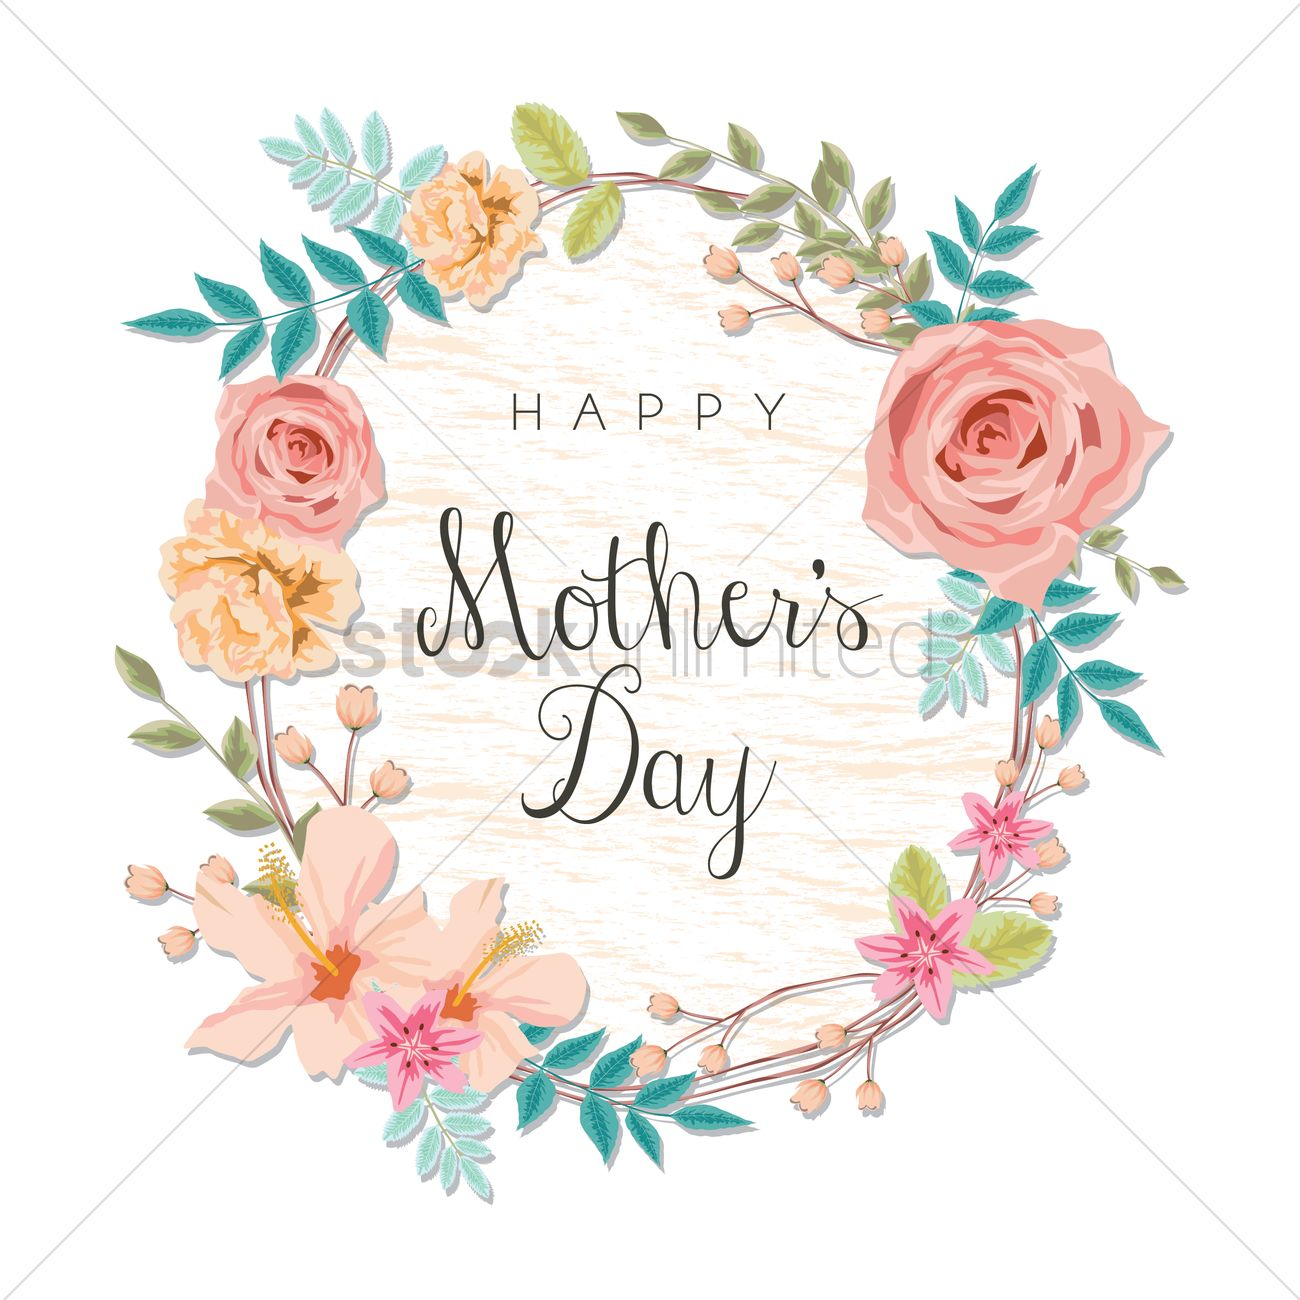 Happy mothers day card vector image 1807838 stockunlimited happy mothers day card vector graphic m4hsunfo